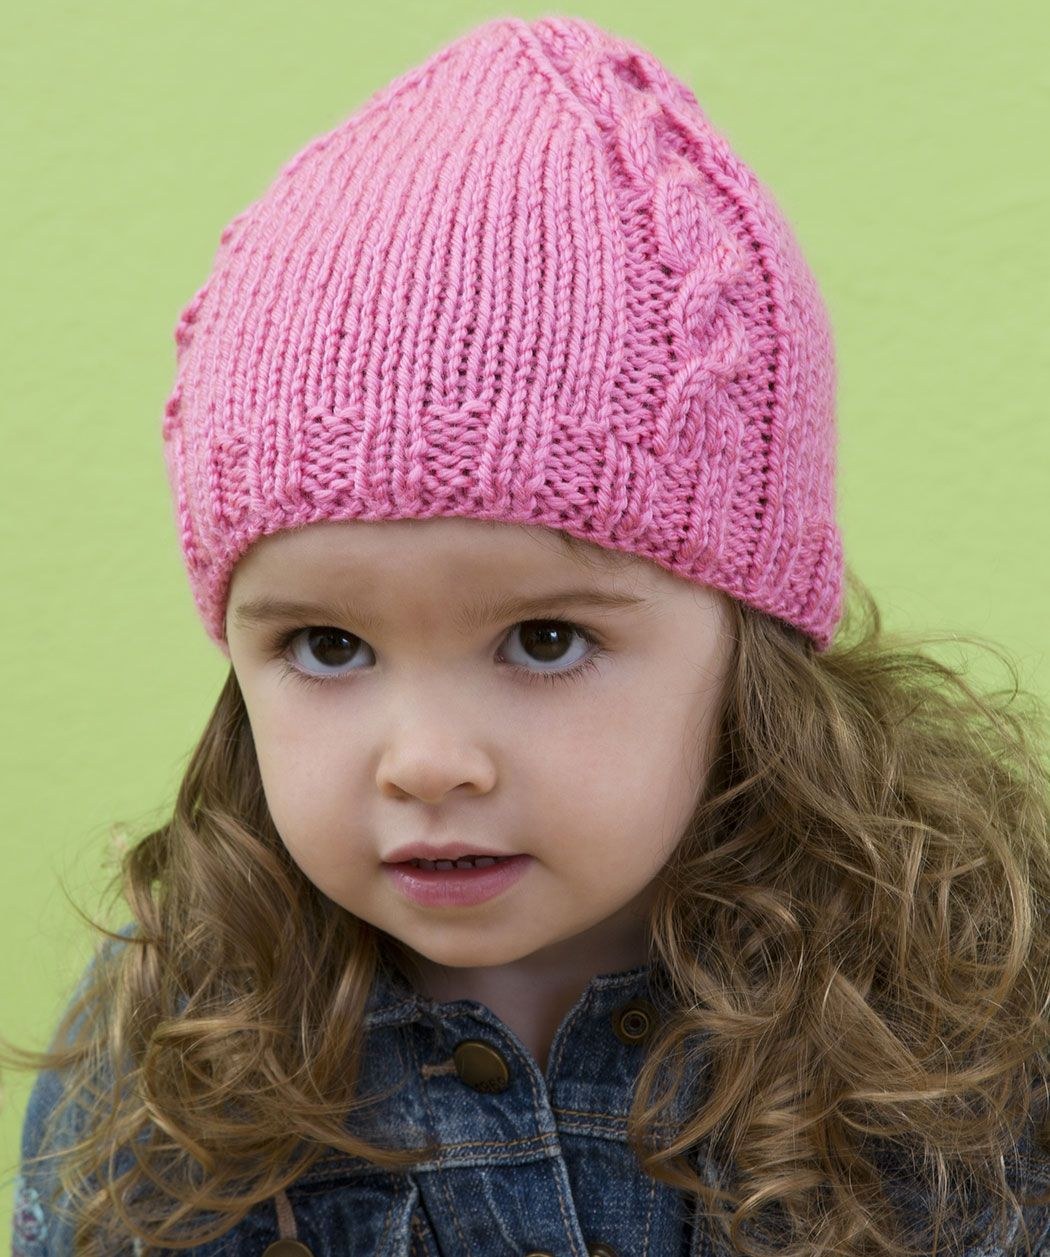 Cabled Baby Beanie Knitting Pattern #knit #redheartyarns New, New Free Patt...